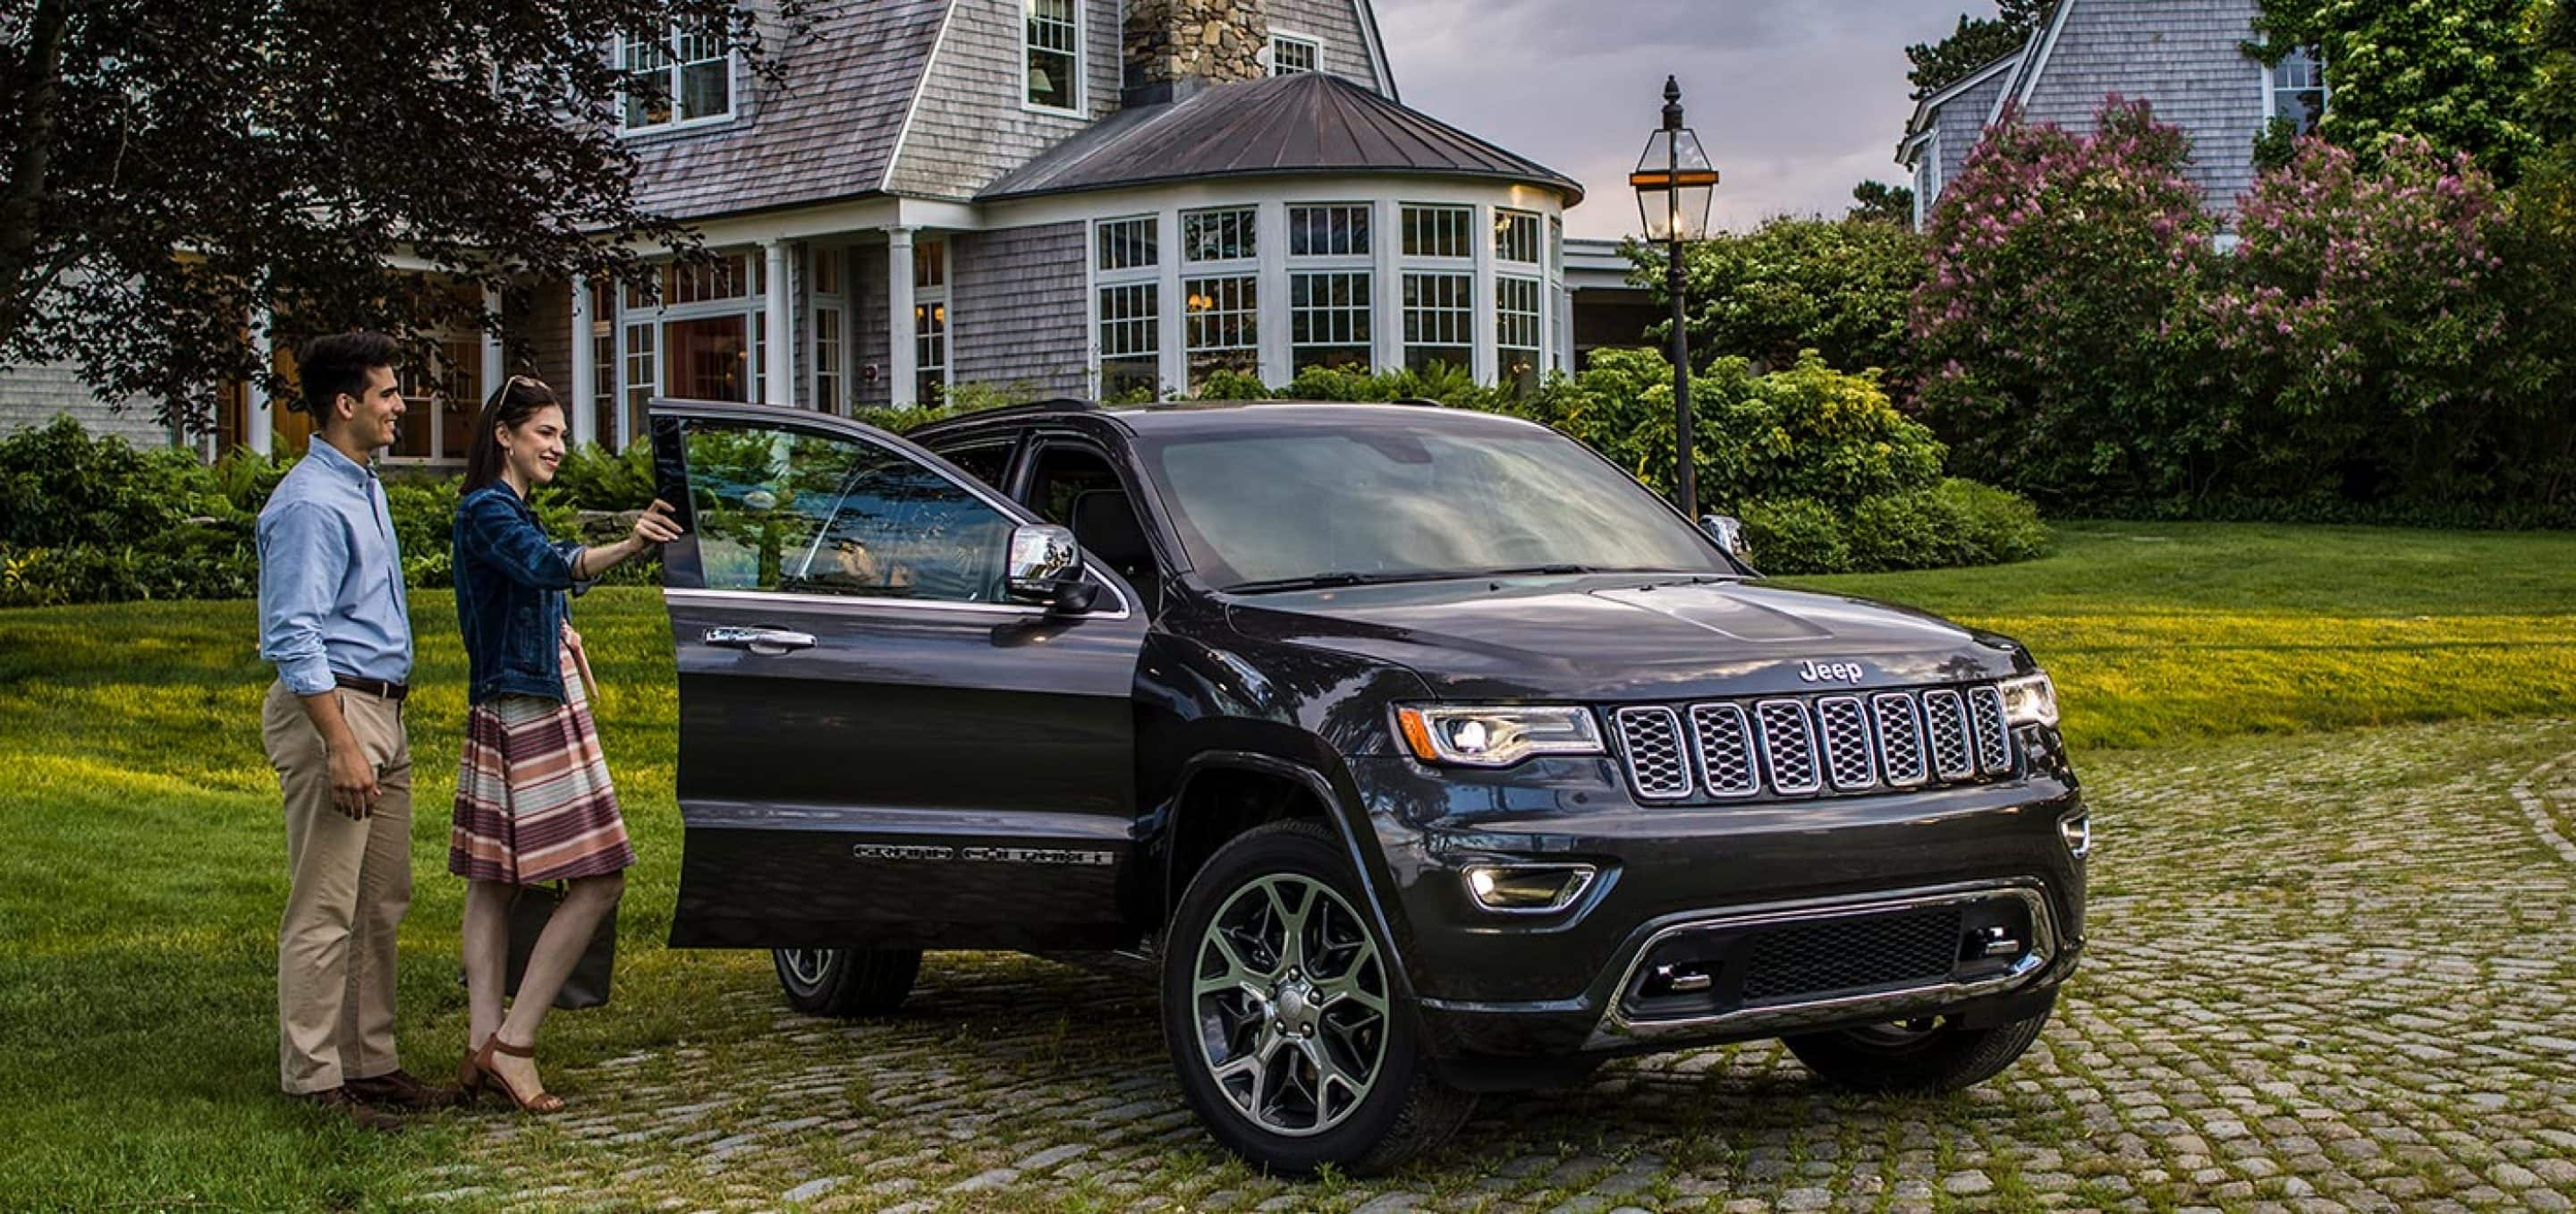 A couple opening the door of a black 2021 Jeep Grand Cherokee SUV parked outside their house